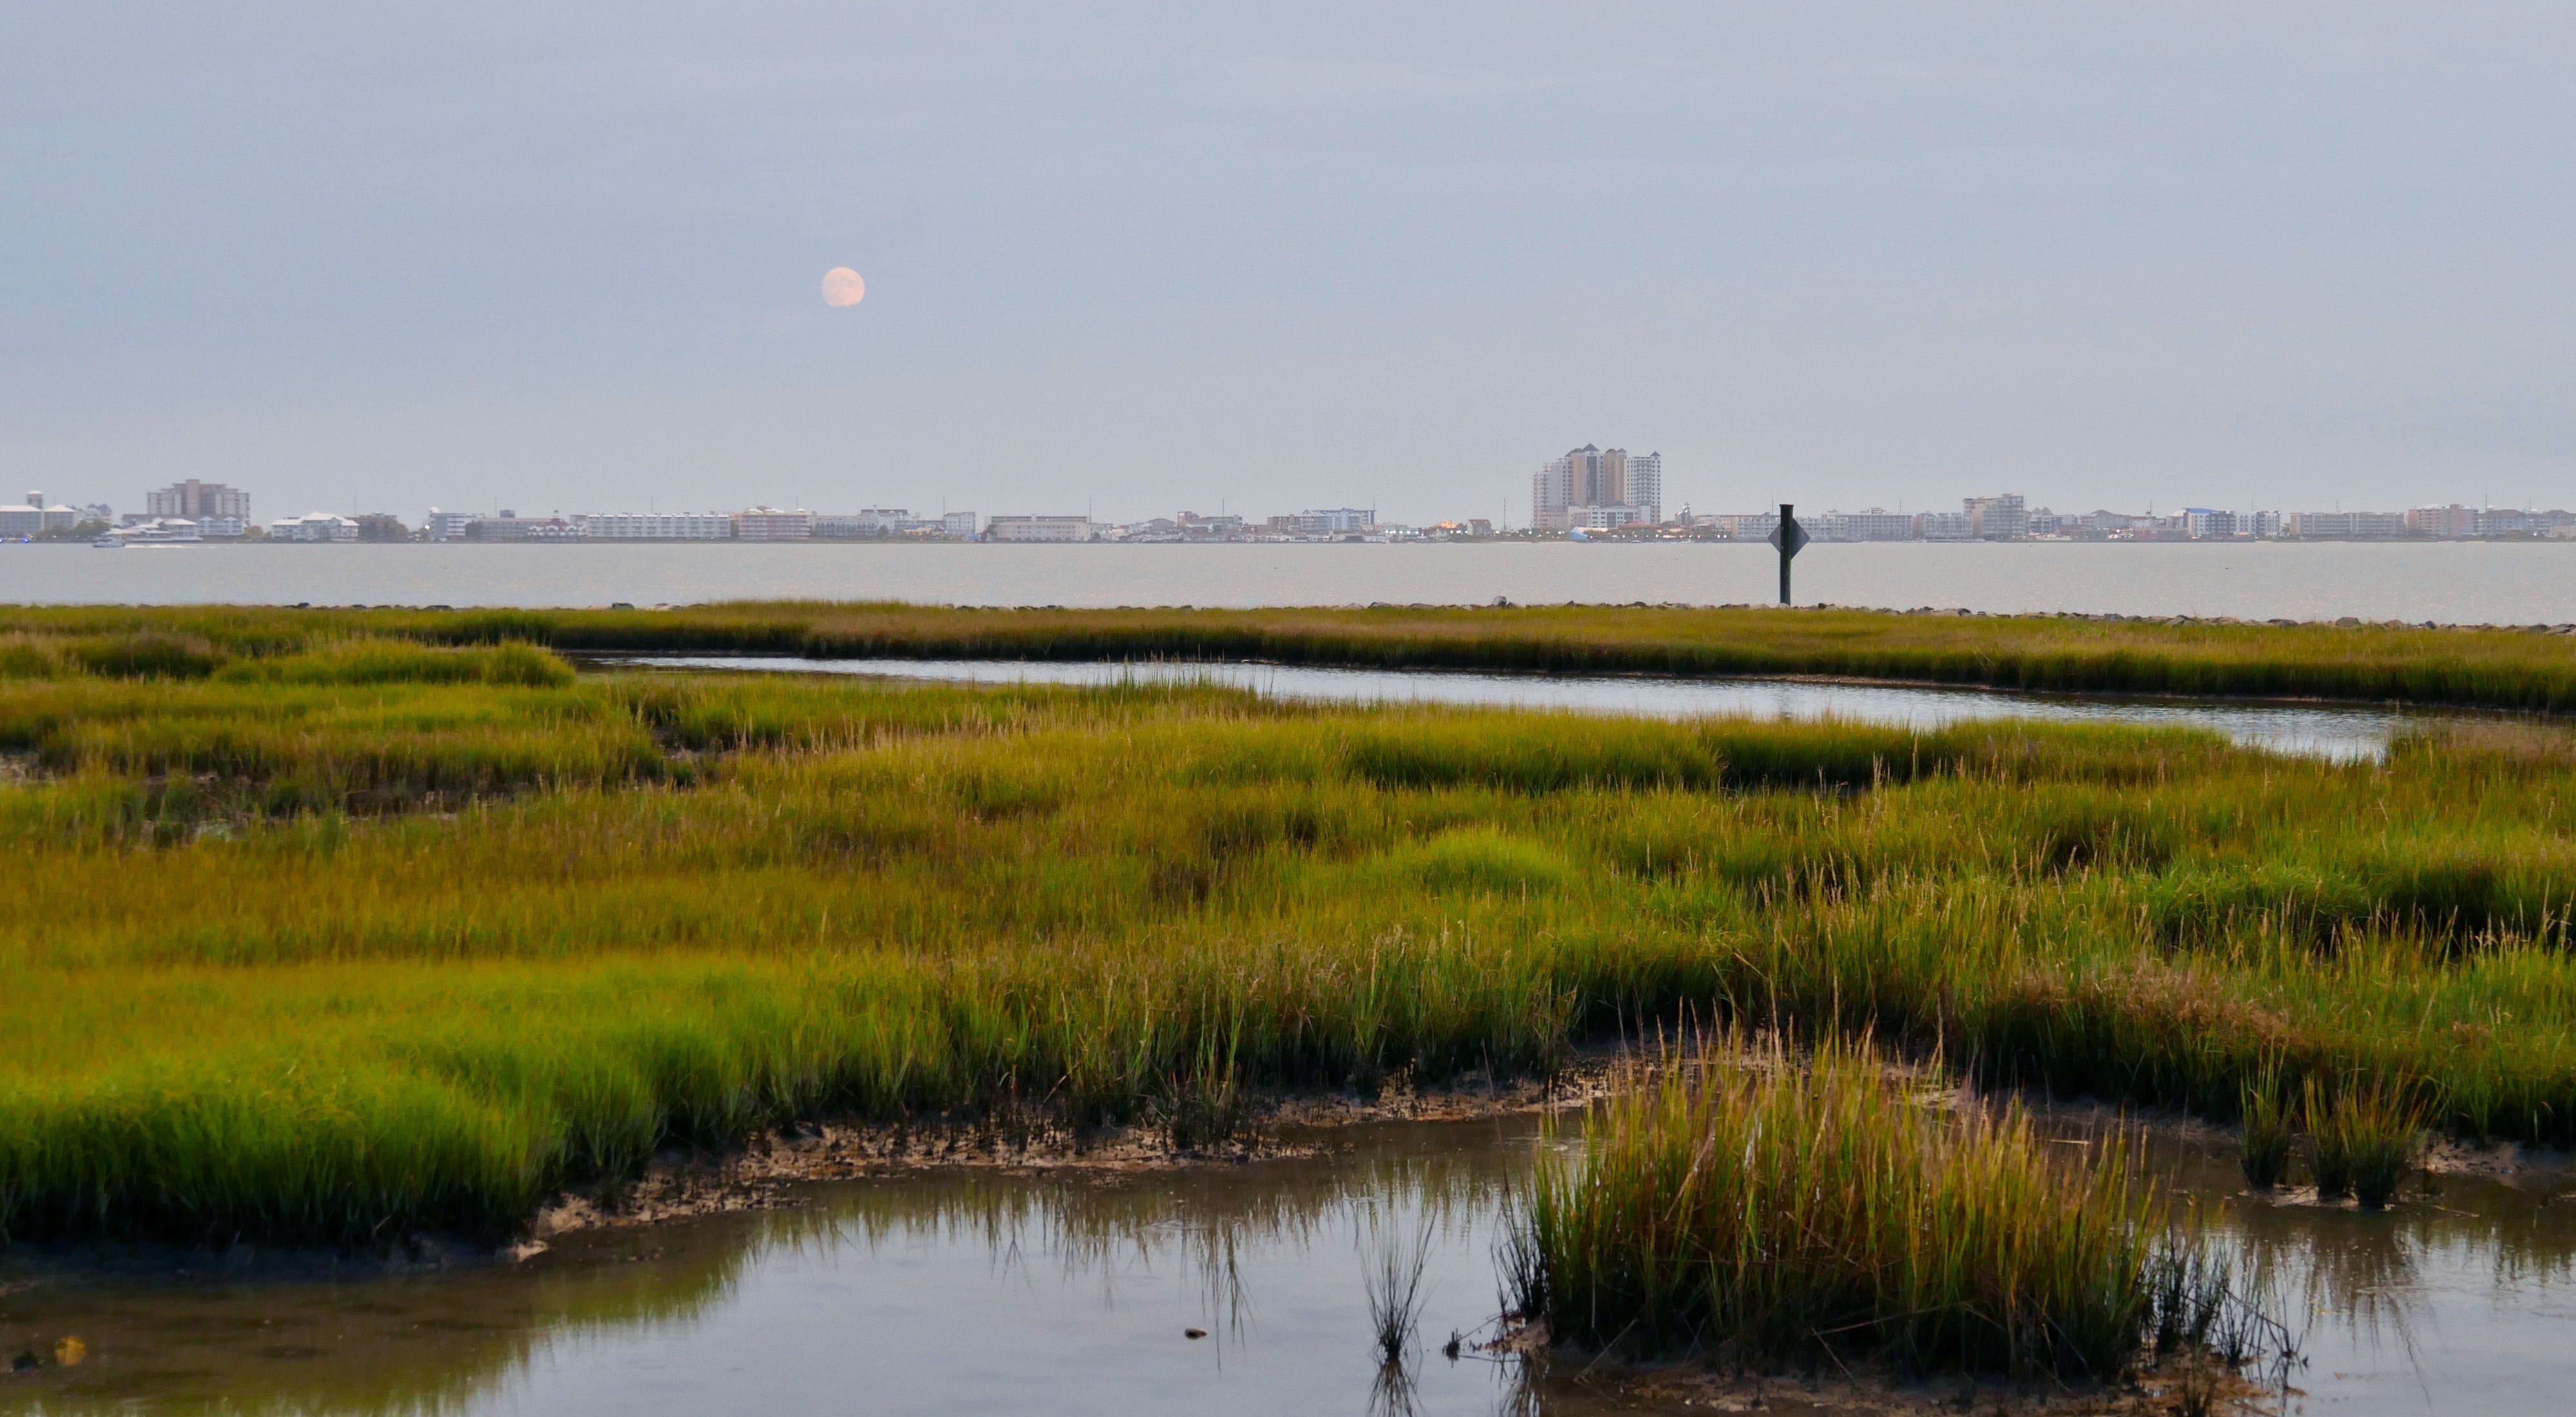 View of Ocean City and salt marshes